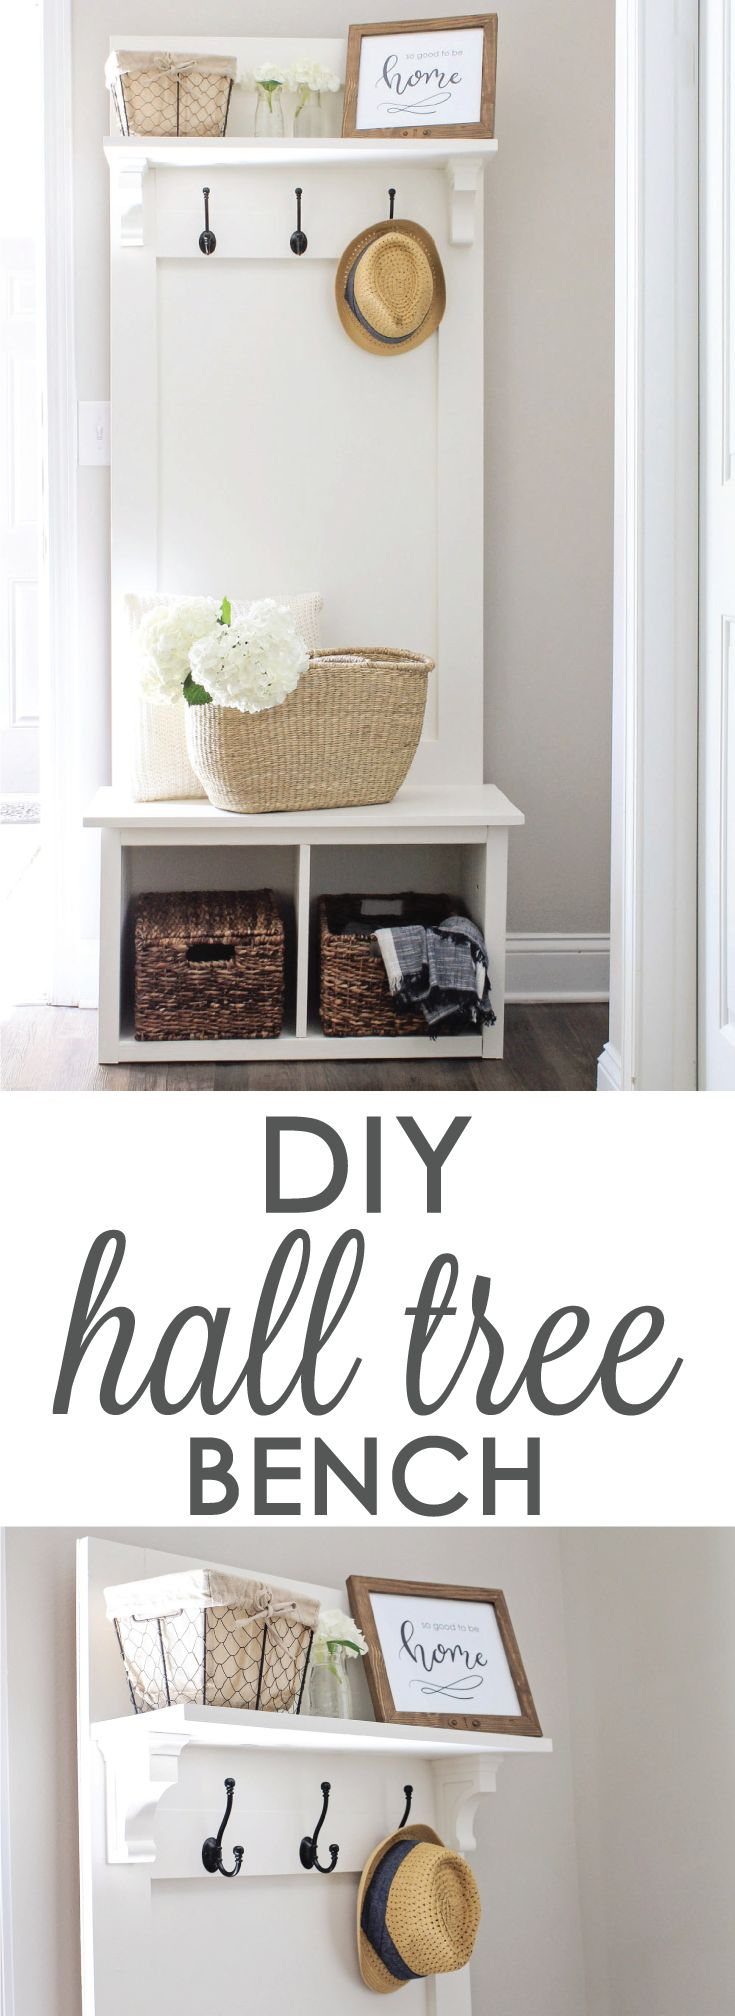 diy entryway hall tree bench perfect for providing small space in entryways mudrooms